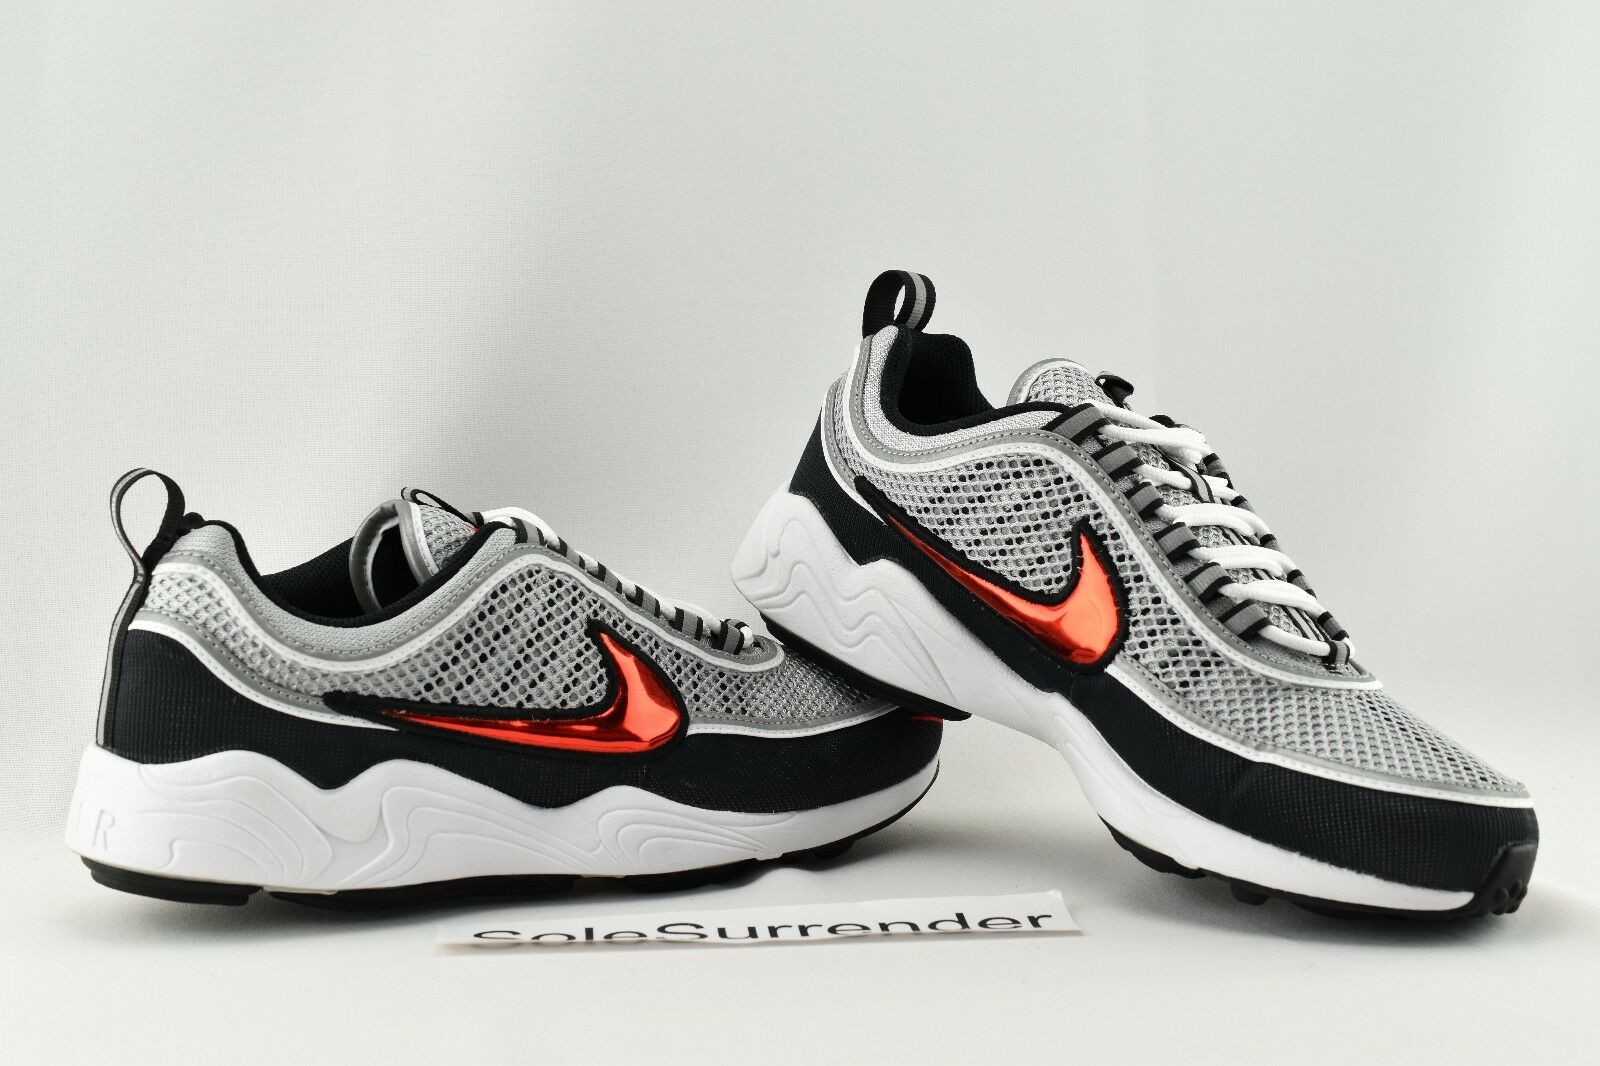 Nike Air Zoom Spirison '16 - CHOOSE SIZE - 849776-001 Lab NikeLab Grey Black Red